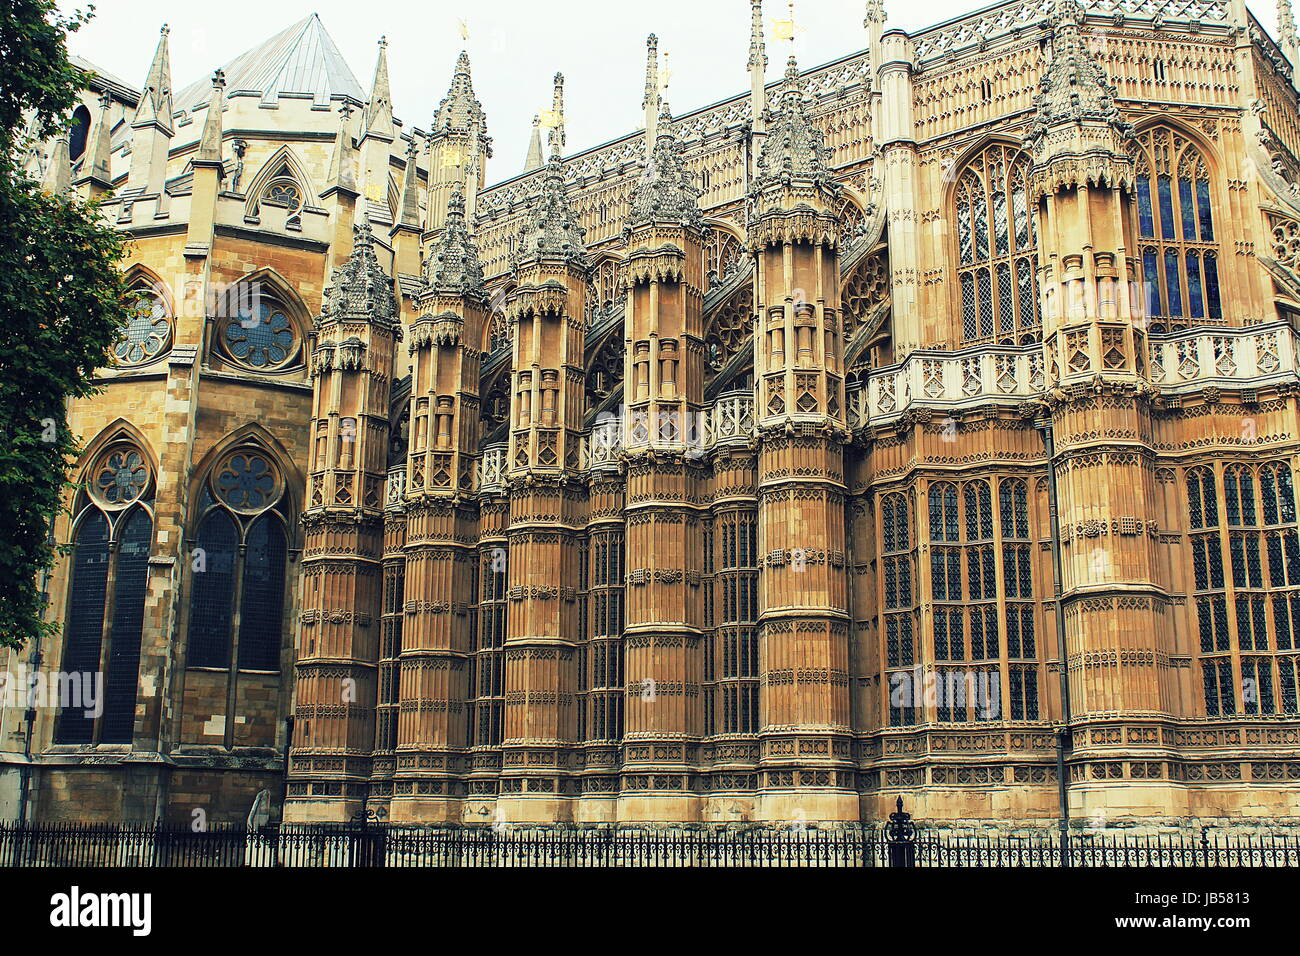 The Westminster Abbey church in London, UK Stock Photo